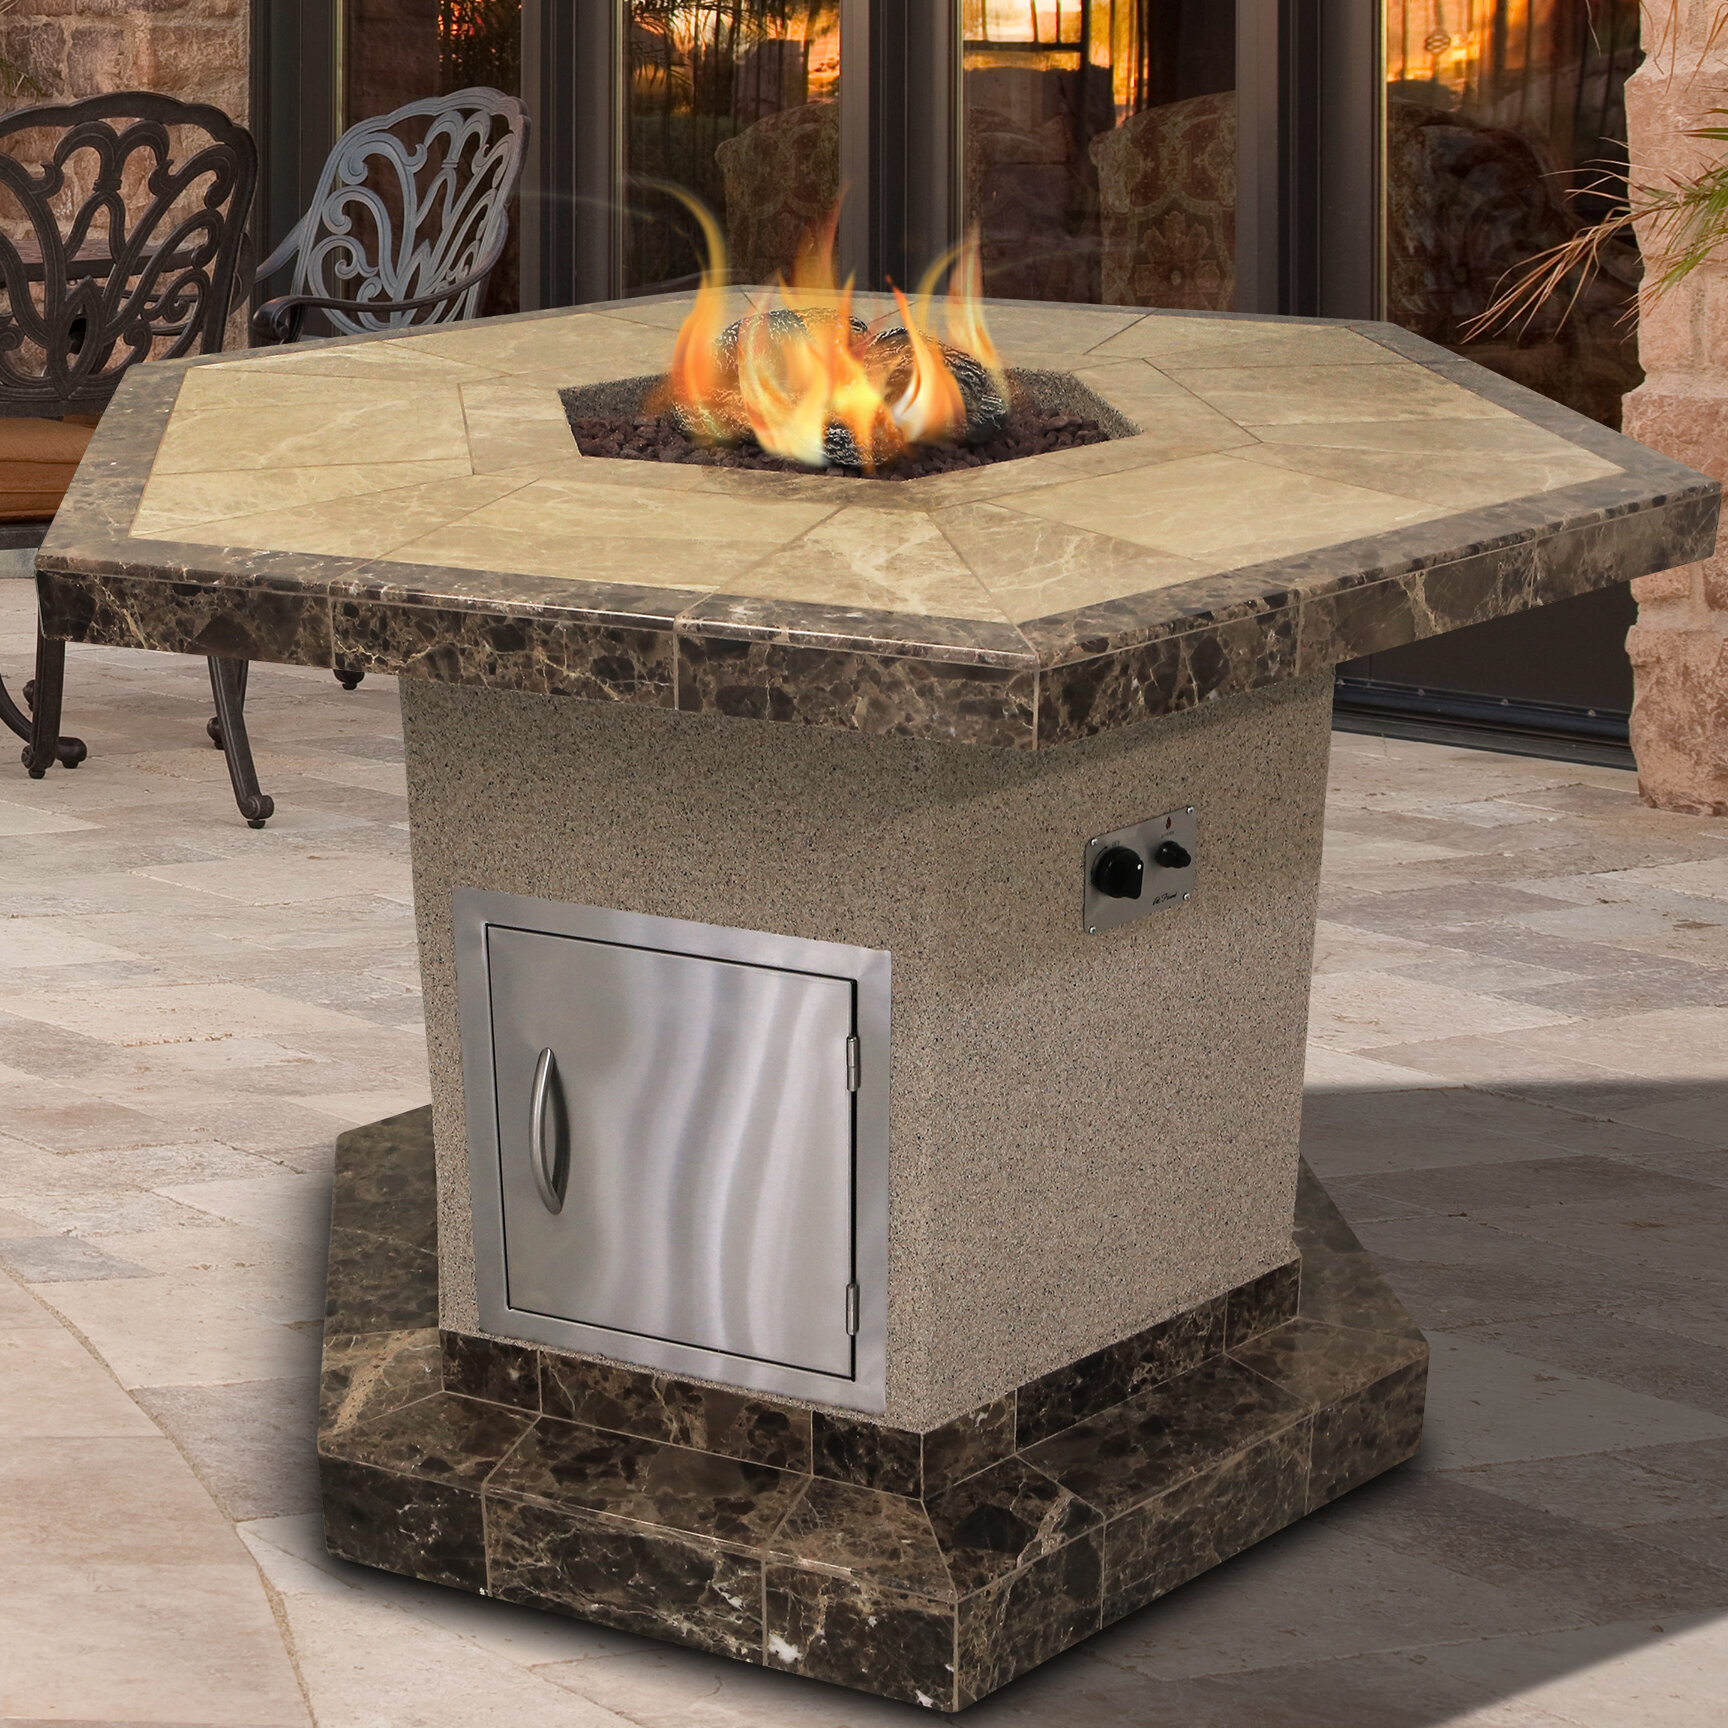 Cal Flame Stucco And Tile Dining Height Square Steel Propane Natural Gas Fire Pit Table Wayfair